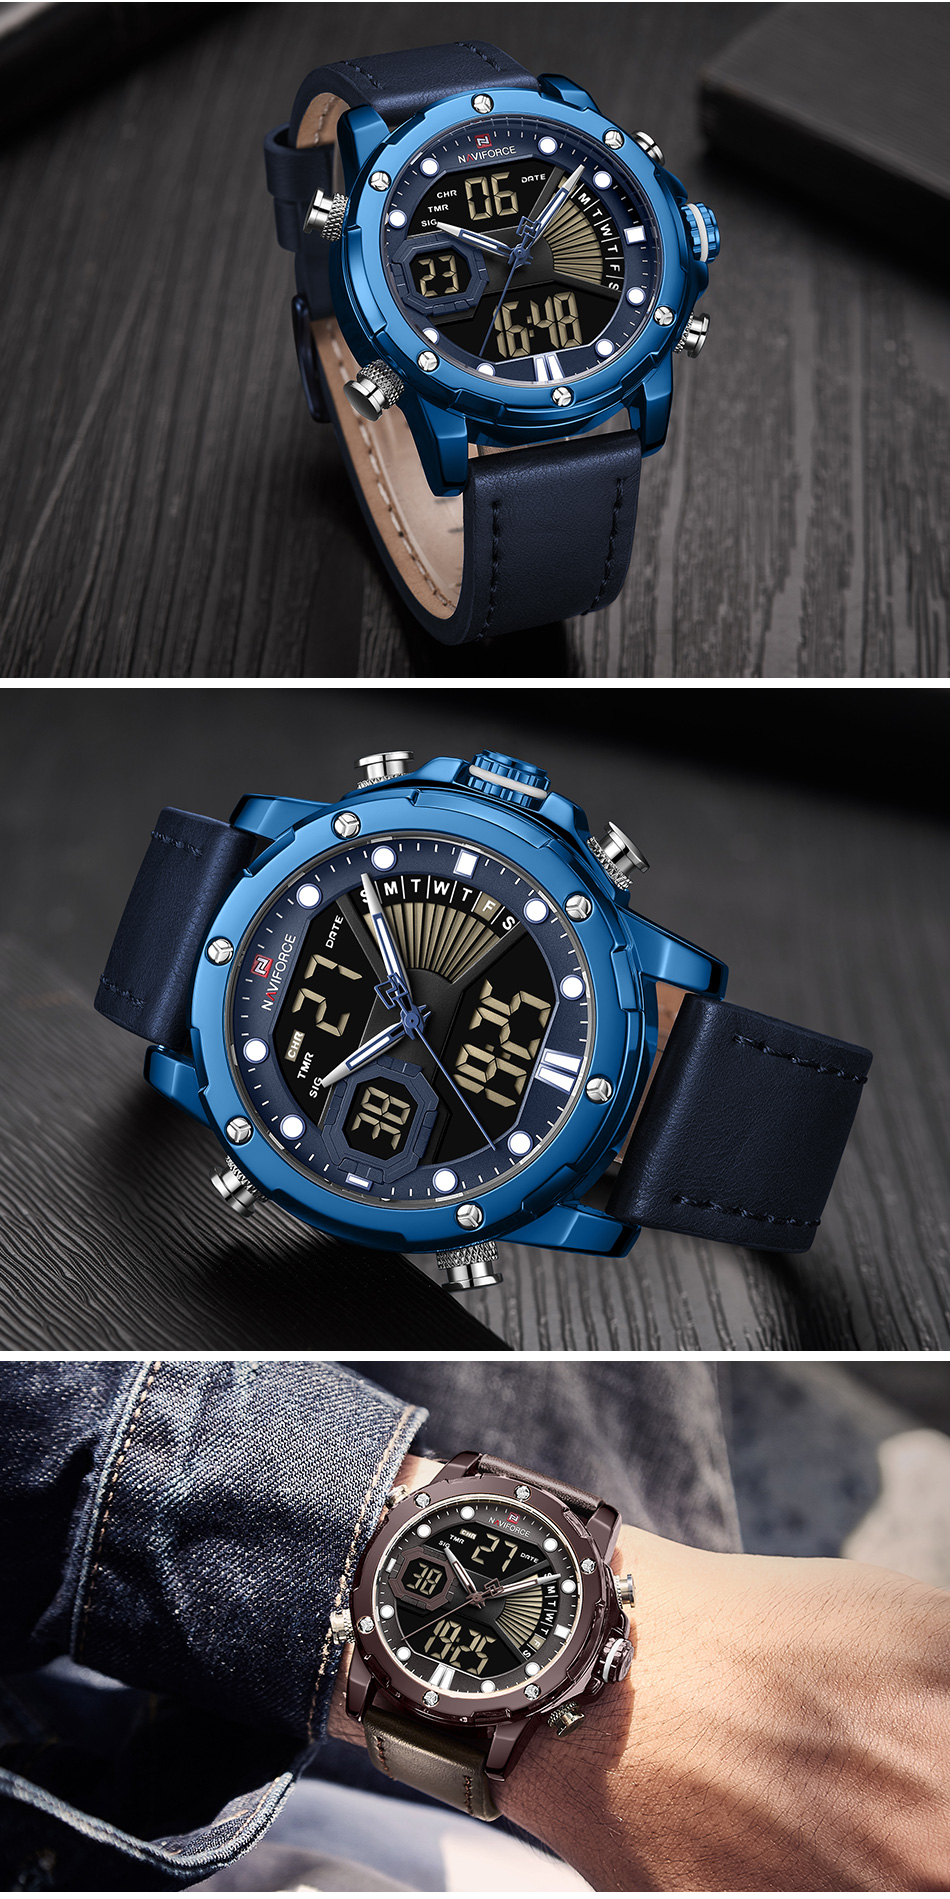 Hb96b0f10dc6747abad4c98bbe535f329L NAVIFORCE Men Watch Top Luxury Brand Fashion Sports Wristwatch